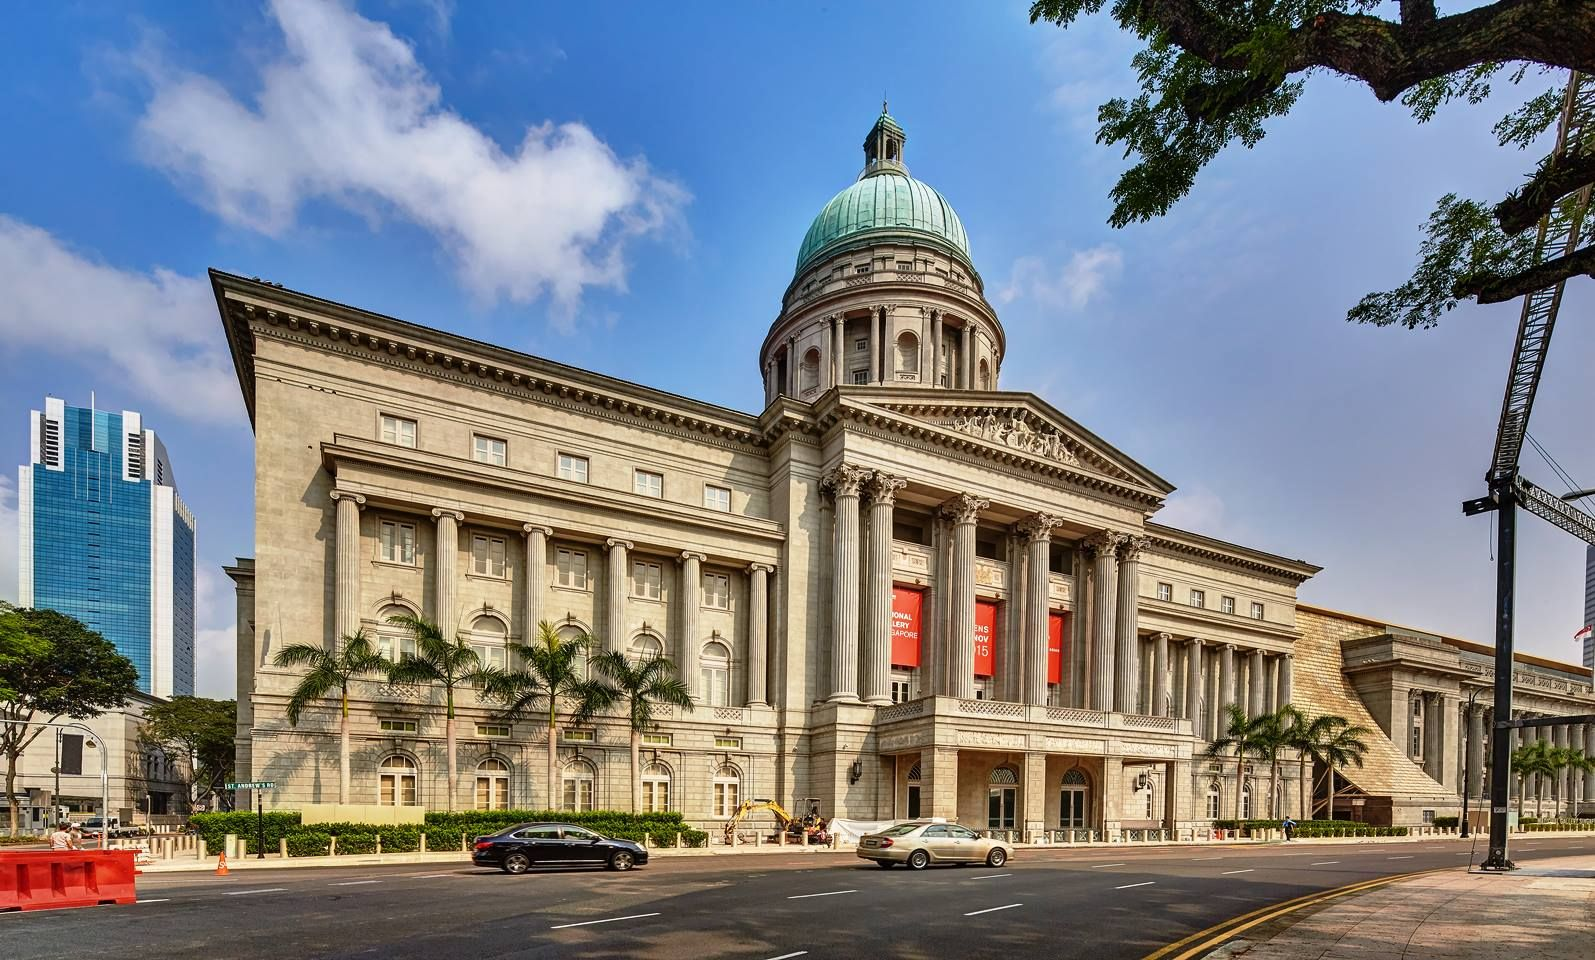 National Gallery Singapore The National Gallery Singapore Occupies Two Historic Buildings The Former City Hall And Supr Building Historic Buildings Singapore